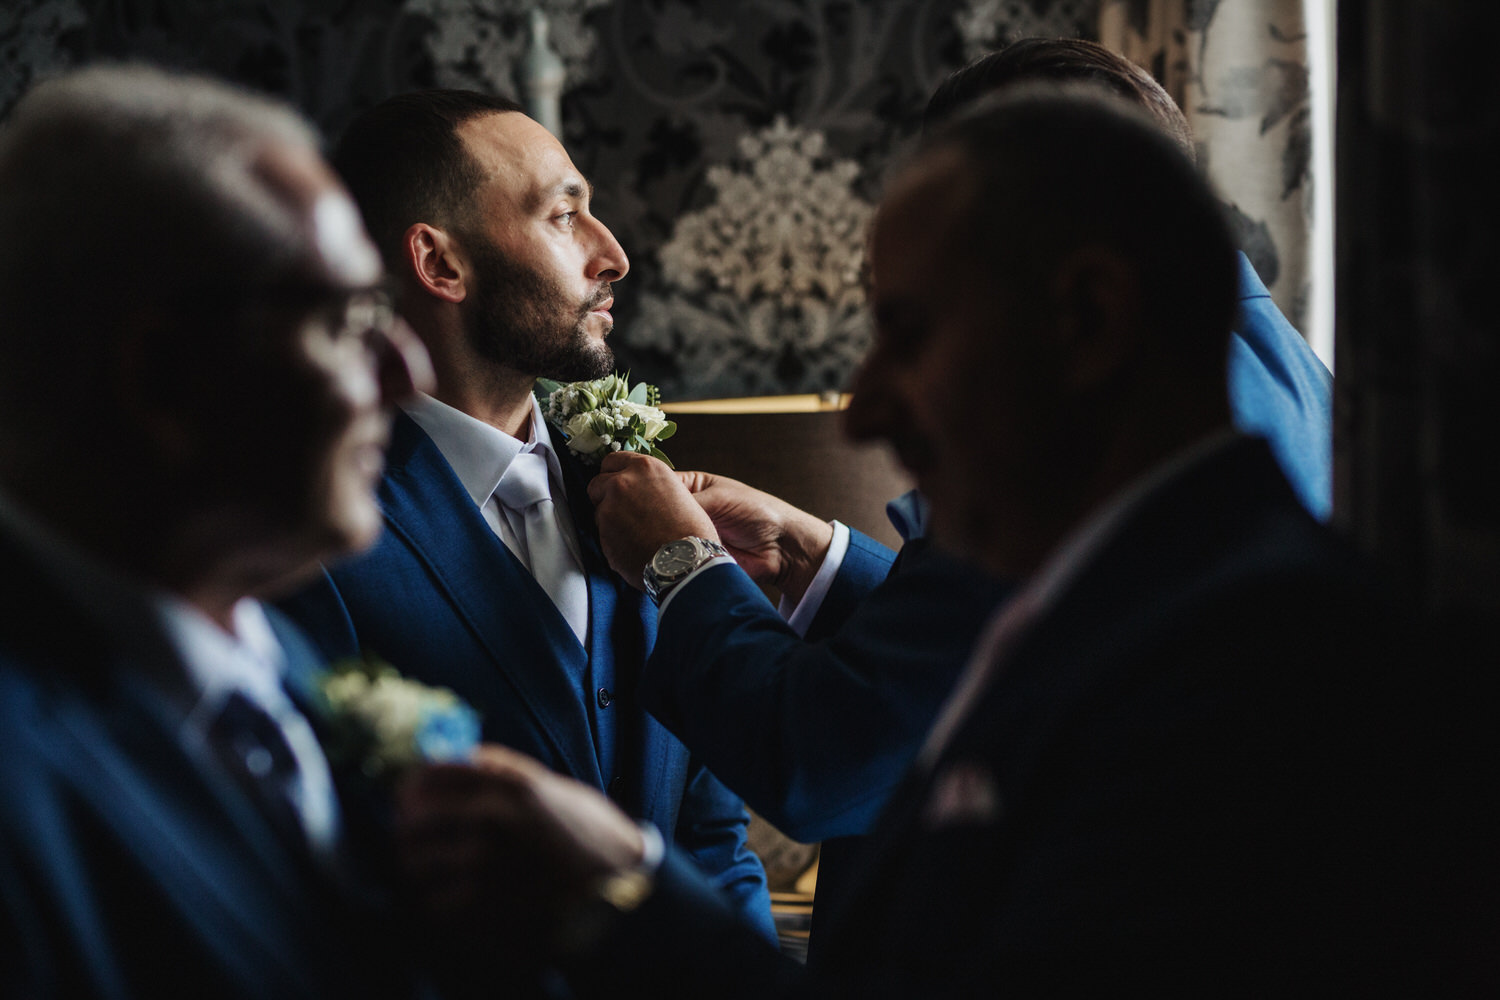 a groomsmen helps the groom with his button hole